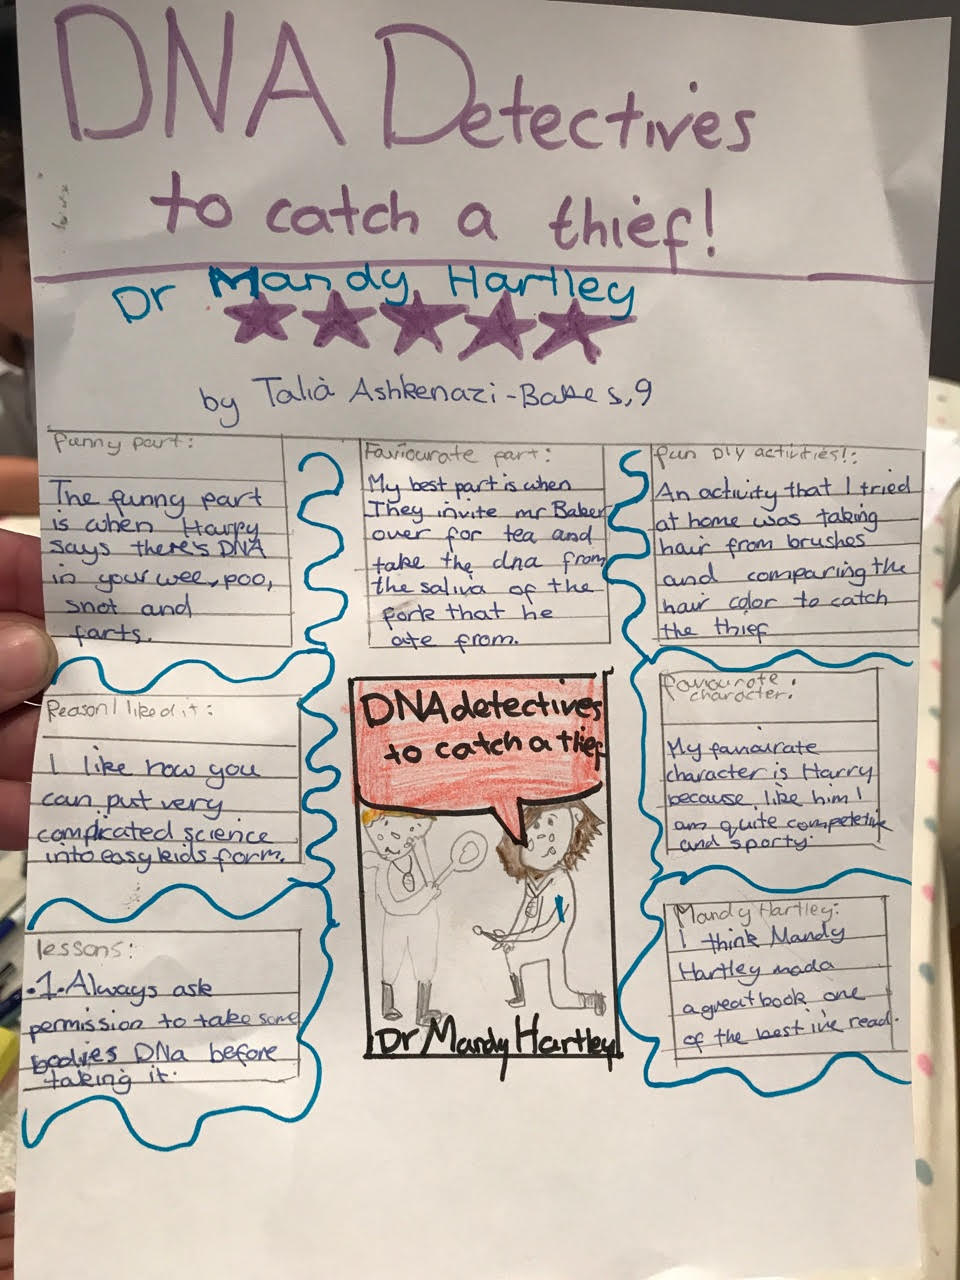 The DNA Detectives Dr Amanda Hartley children's book reviews